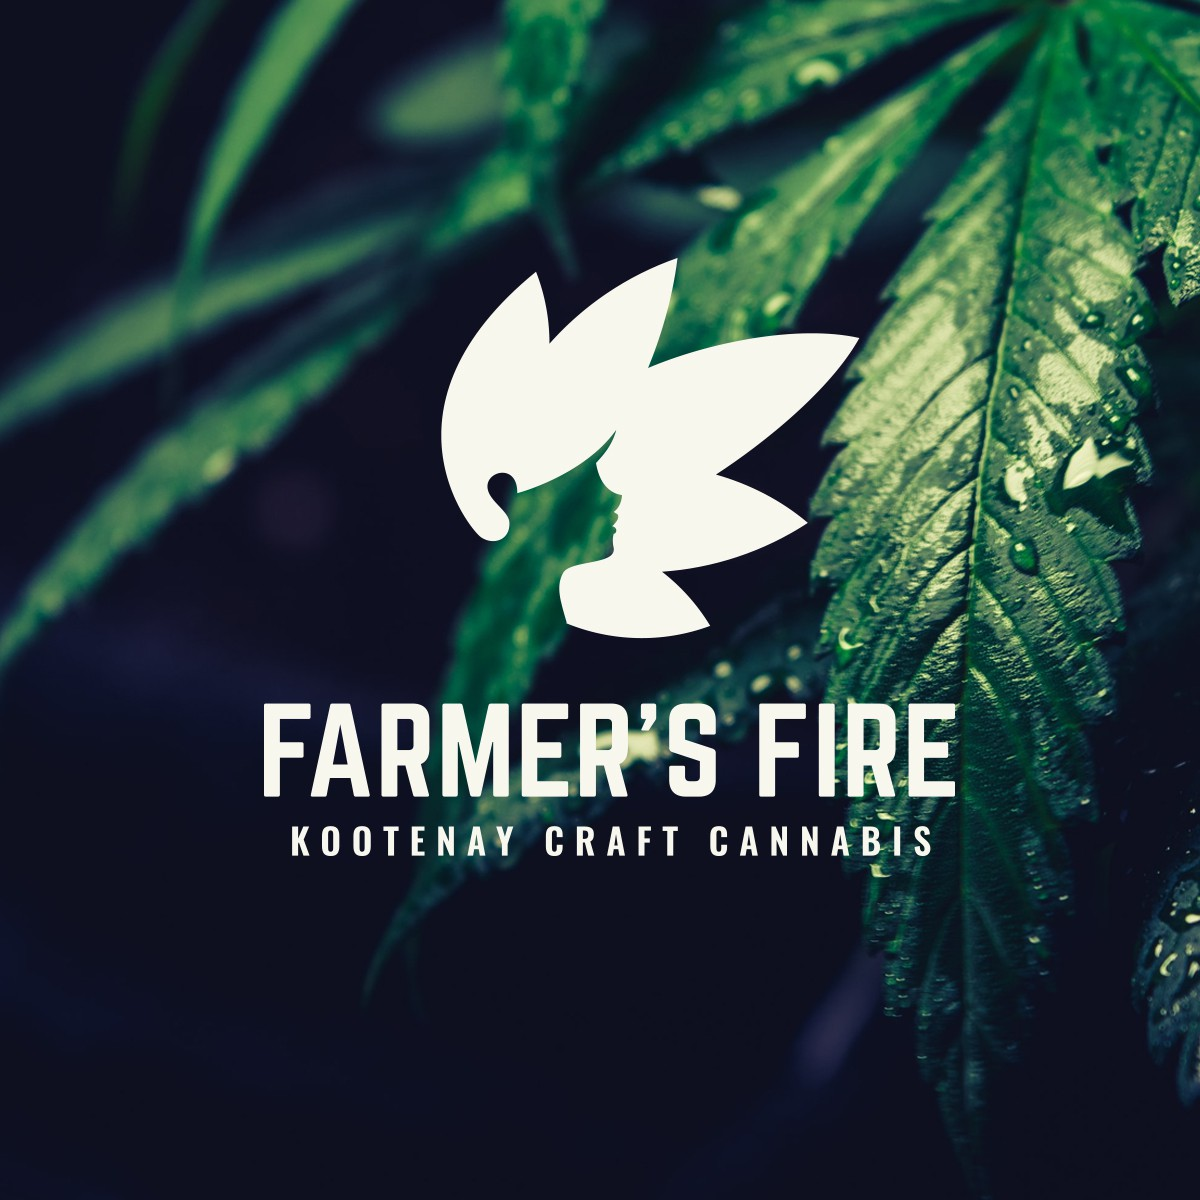 Cannabis Cultivation Business Branding and Logo